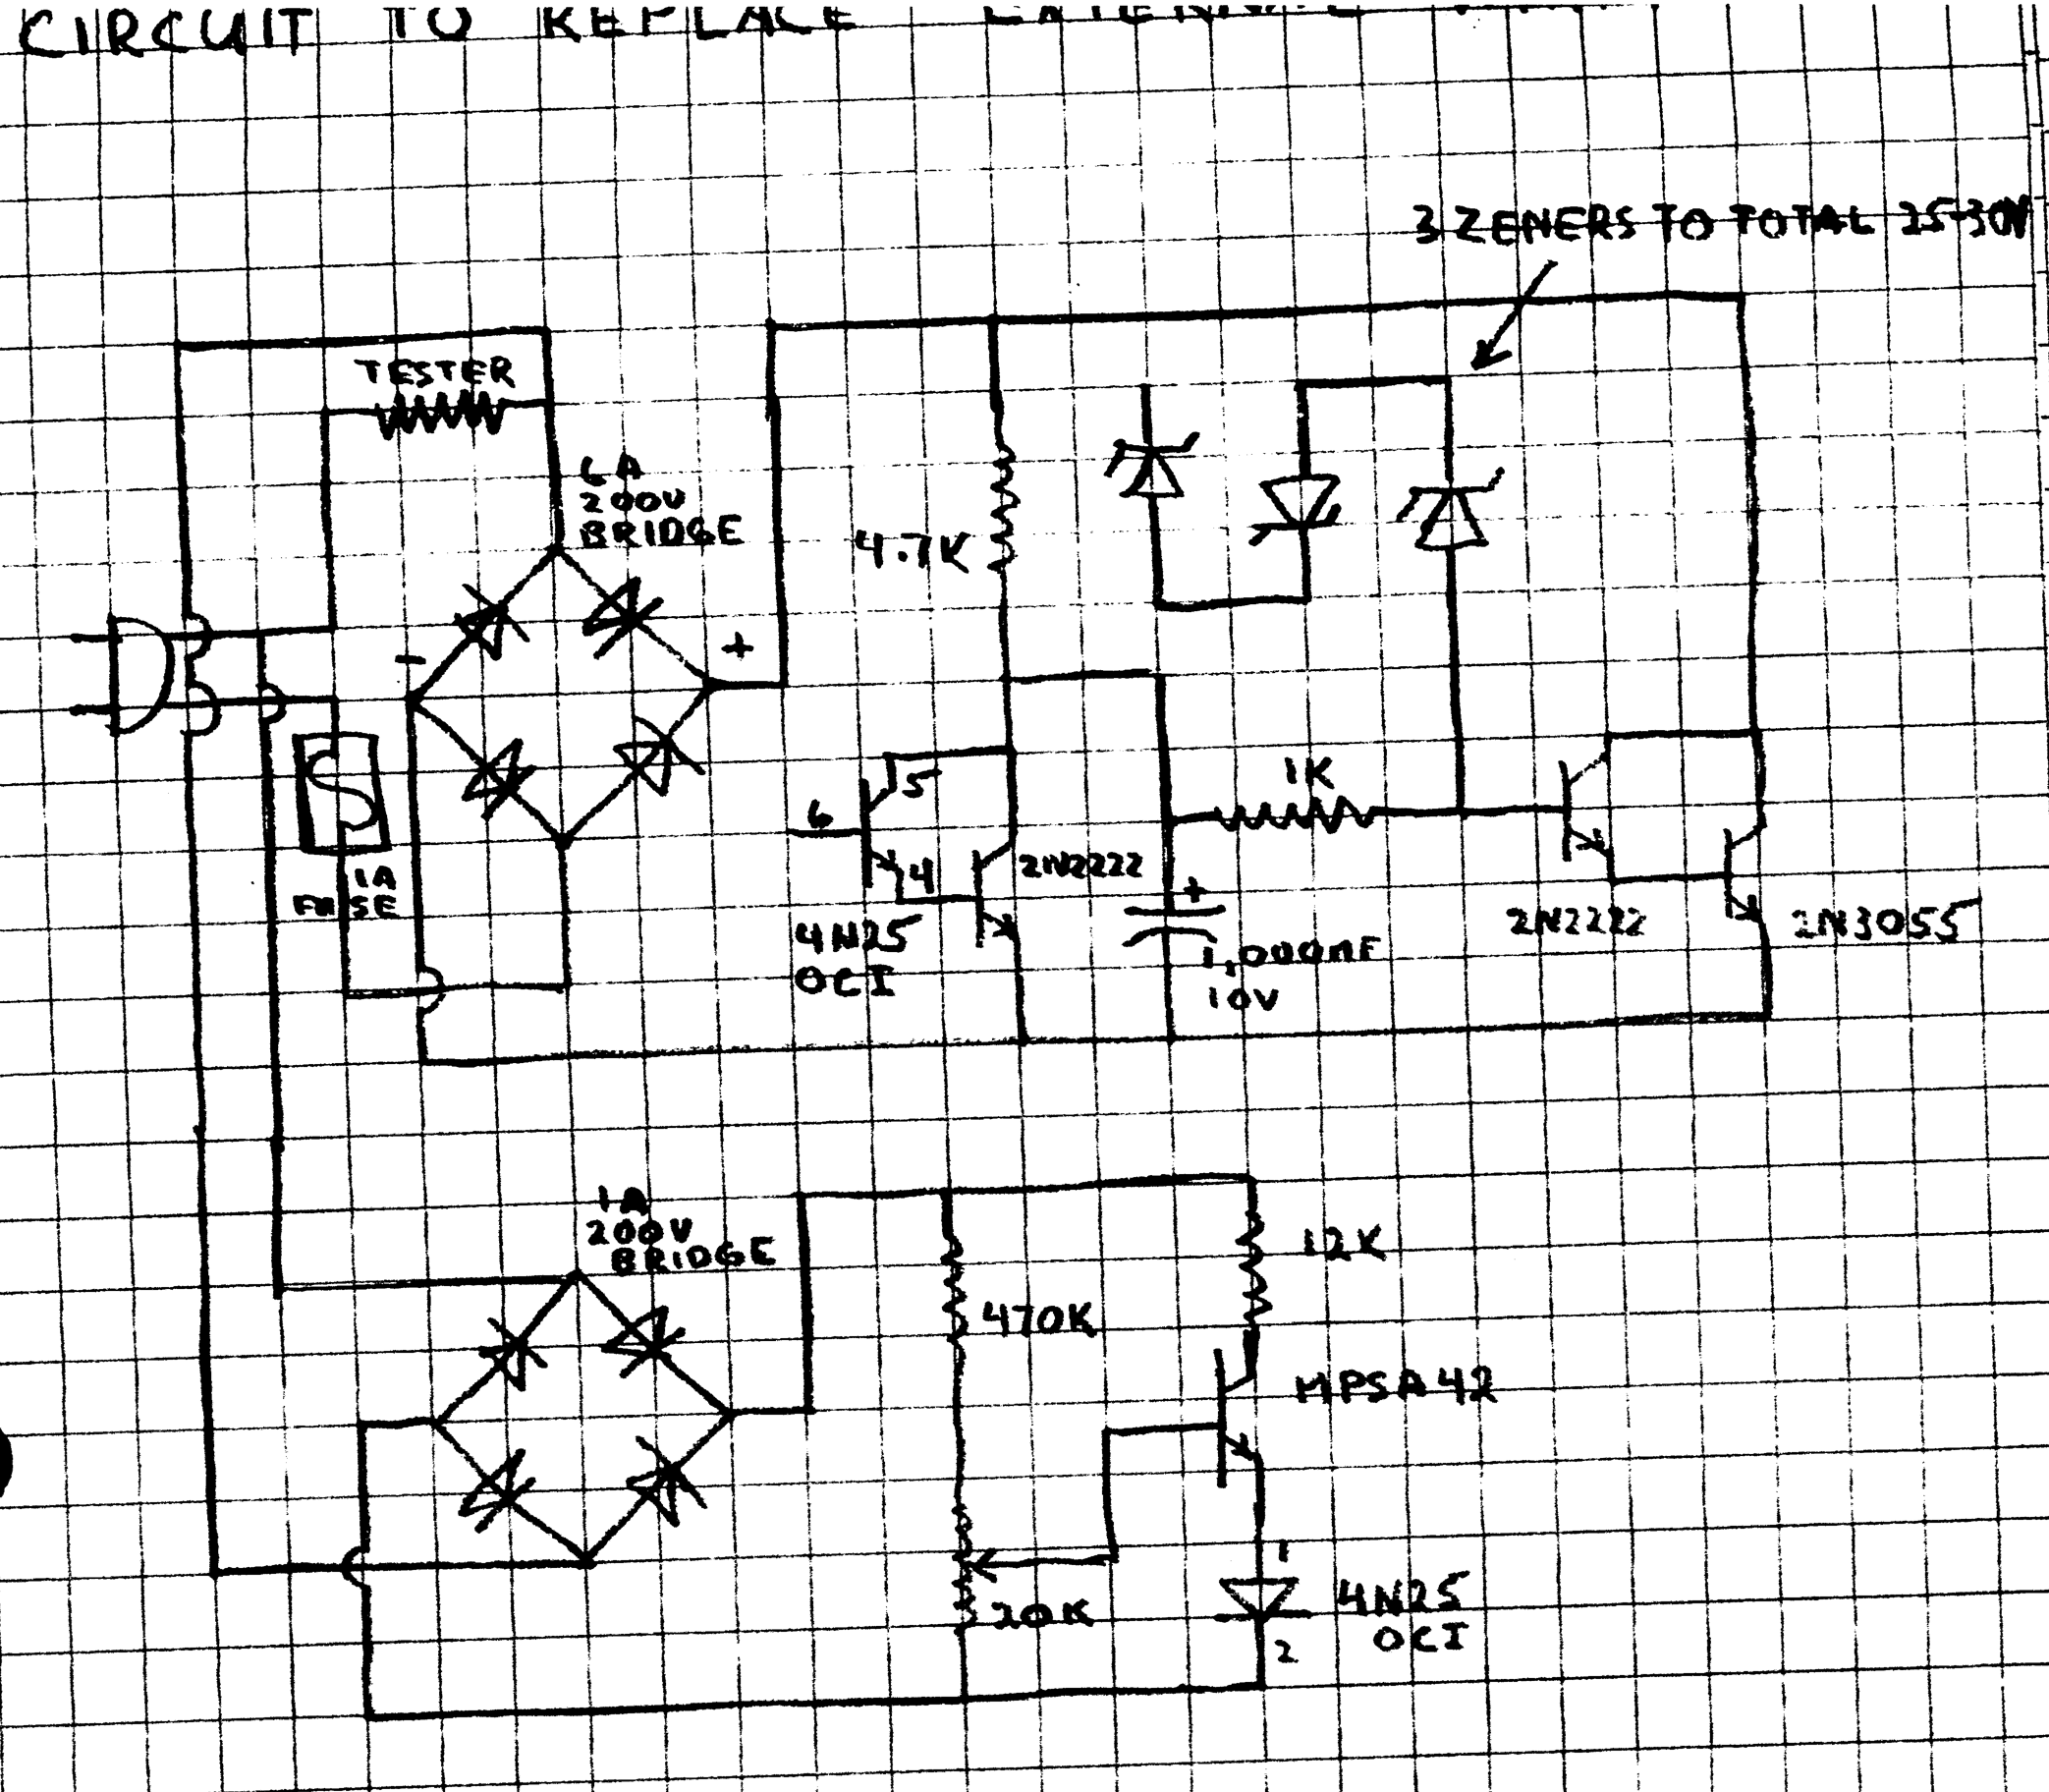 Accurate Calition Of The Hickok 539B And Hickok 539C Tube ... on cable tester schematic, tube power supply schematic, vacuum tube schematic symbol, battery tester schematic, vacuum tube alarm clock, led tester schematic, vacuum amplifier schematic, vacuum tube voltmeter schematic, vacuum tube diagram, capacitor tester schematic, vacuum tube amplifier, vacuum tube pin layout, diode schematic, vacuum generator schematic, vacuum tube preamp schematic, vacuum tube radio schematics, vacuum tube computer schematic, vacuum tube power supply design, vacuum tube tv, vacuum tube testers retail store,